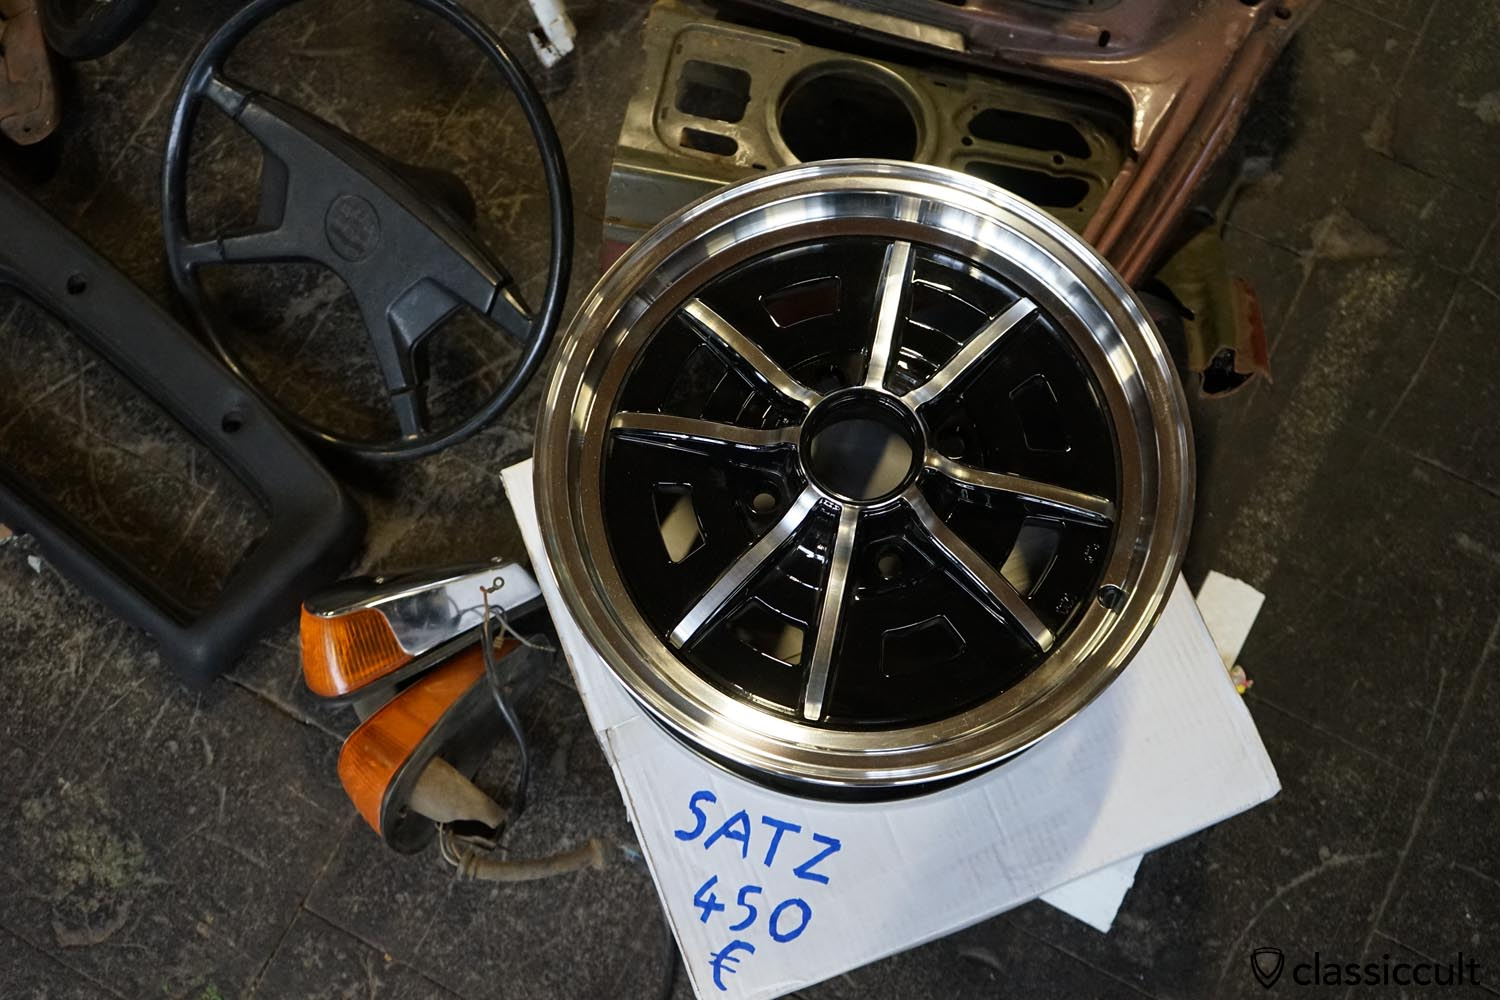 VW Sprintstar alloy wheels 4x130 repro